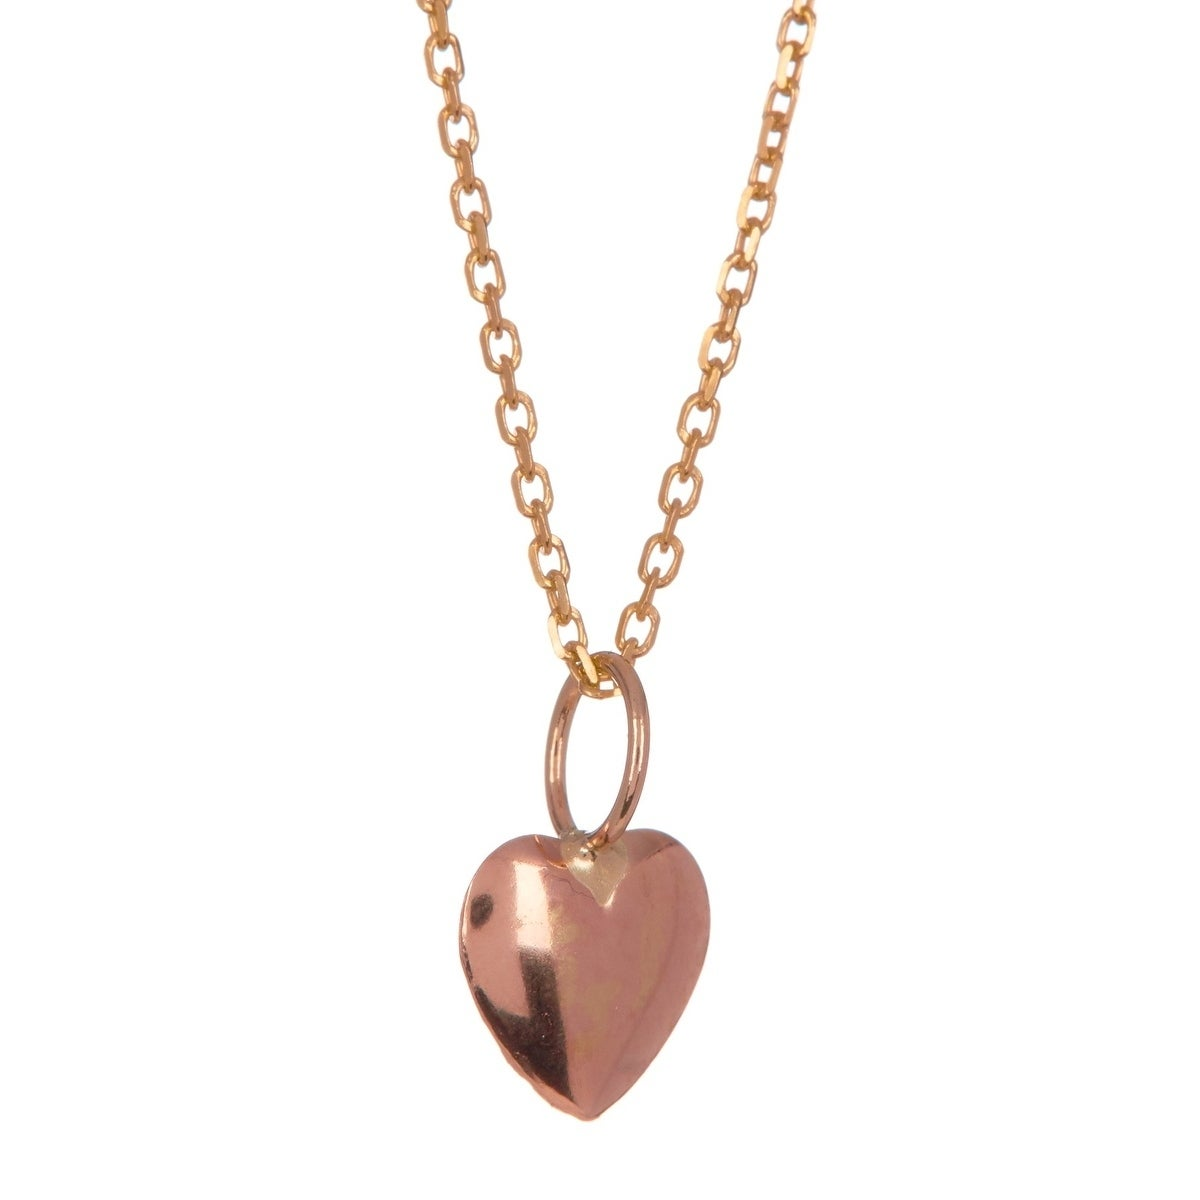 d9164305f Pori Jewelers 14K Solid Rose Gold Heart Pendant with Gold-fill Chain  Necklace